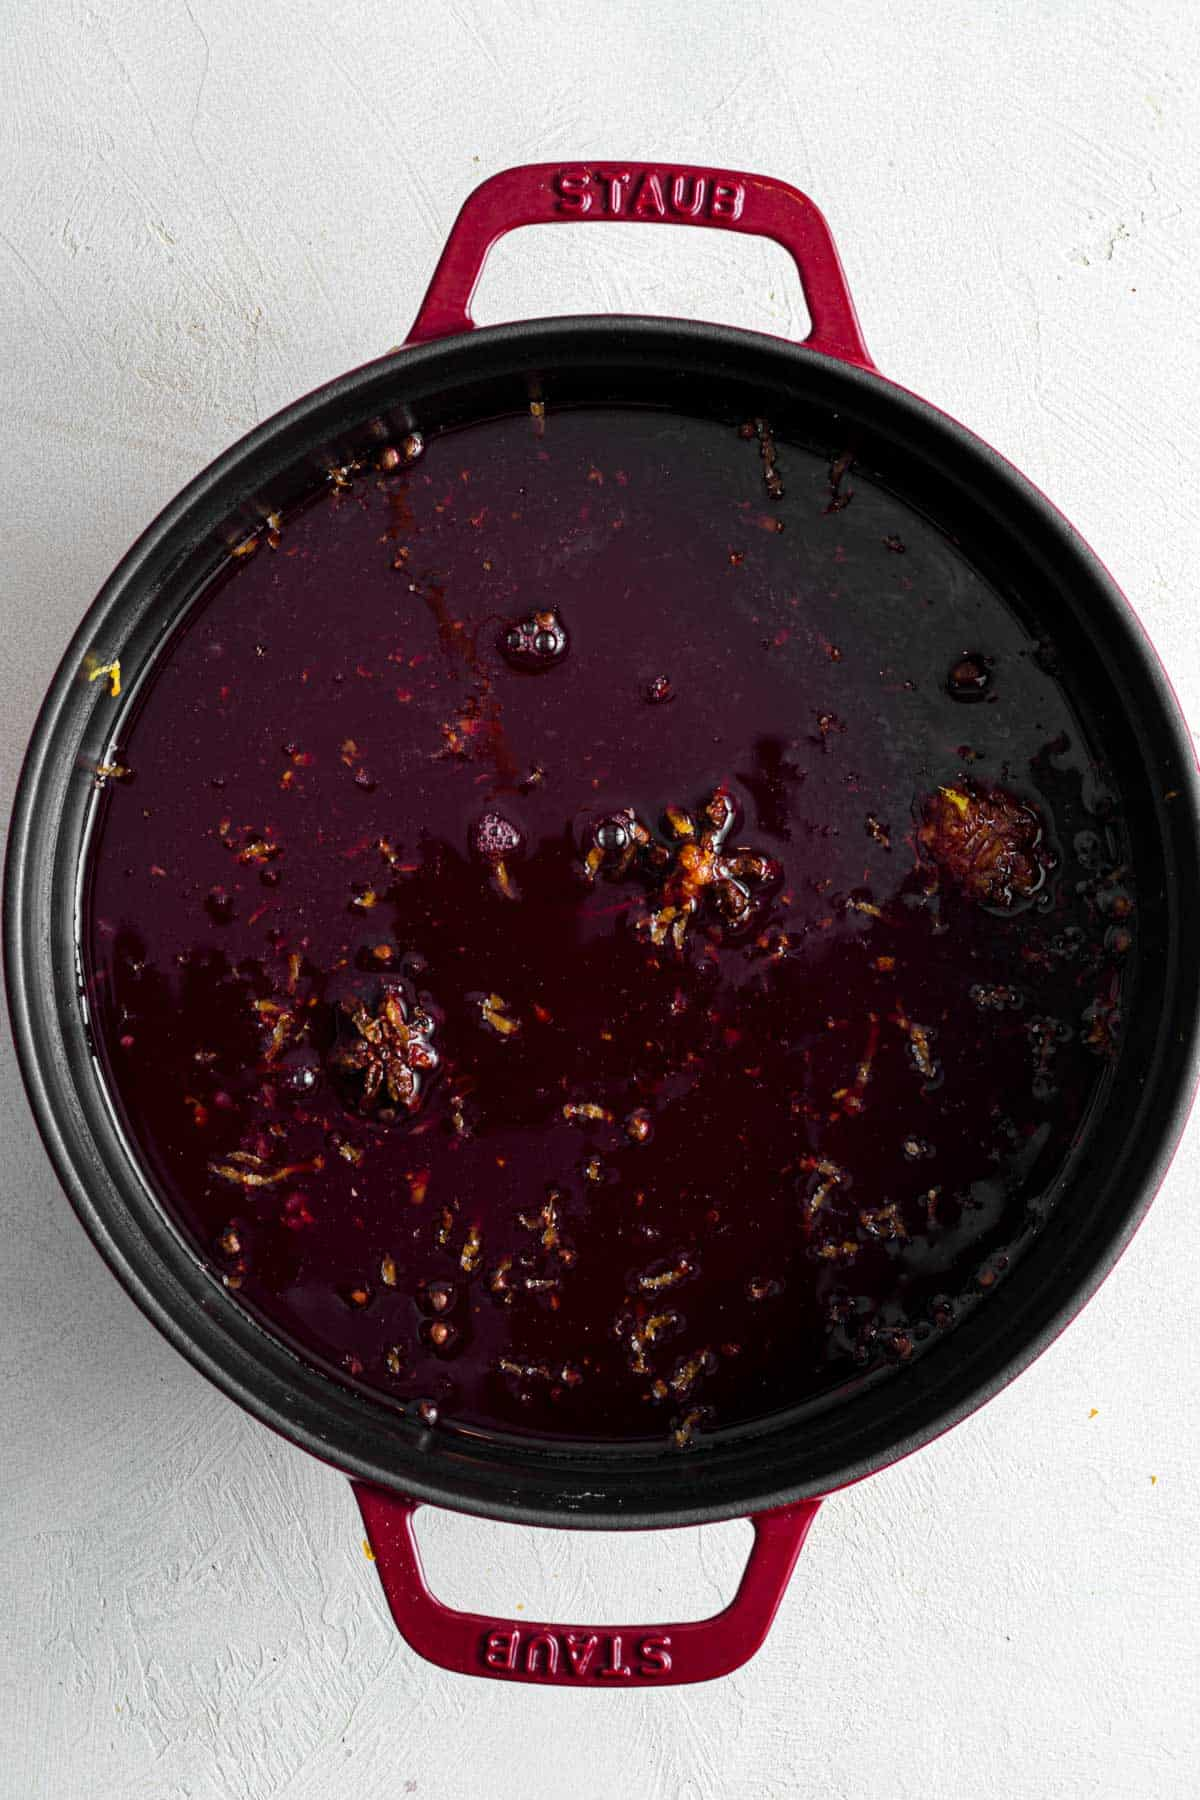 Mulled wine after simmering for 1 hour on stovetop.